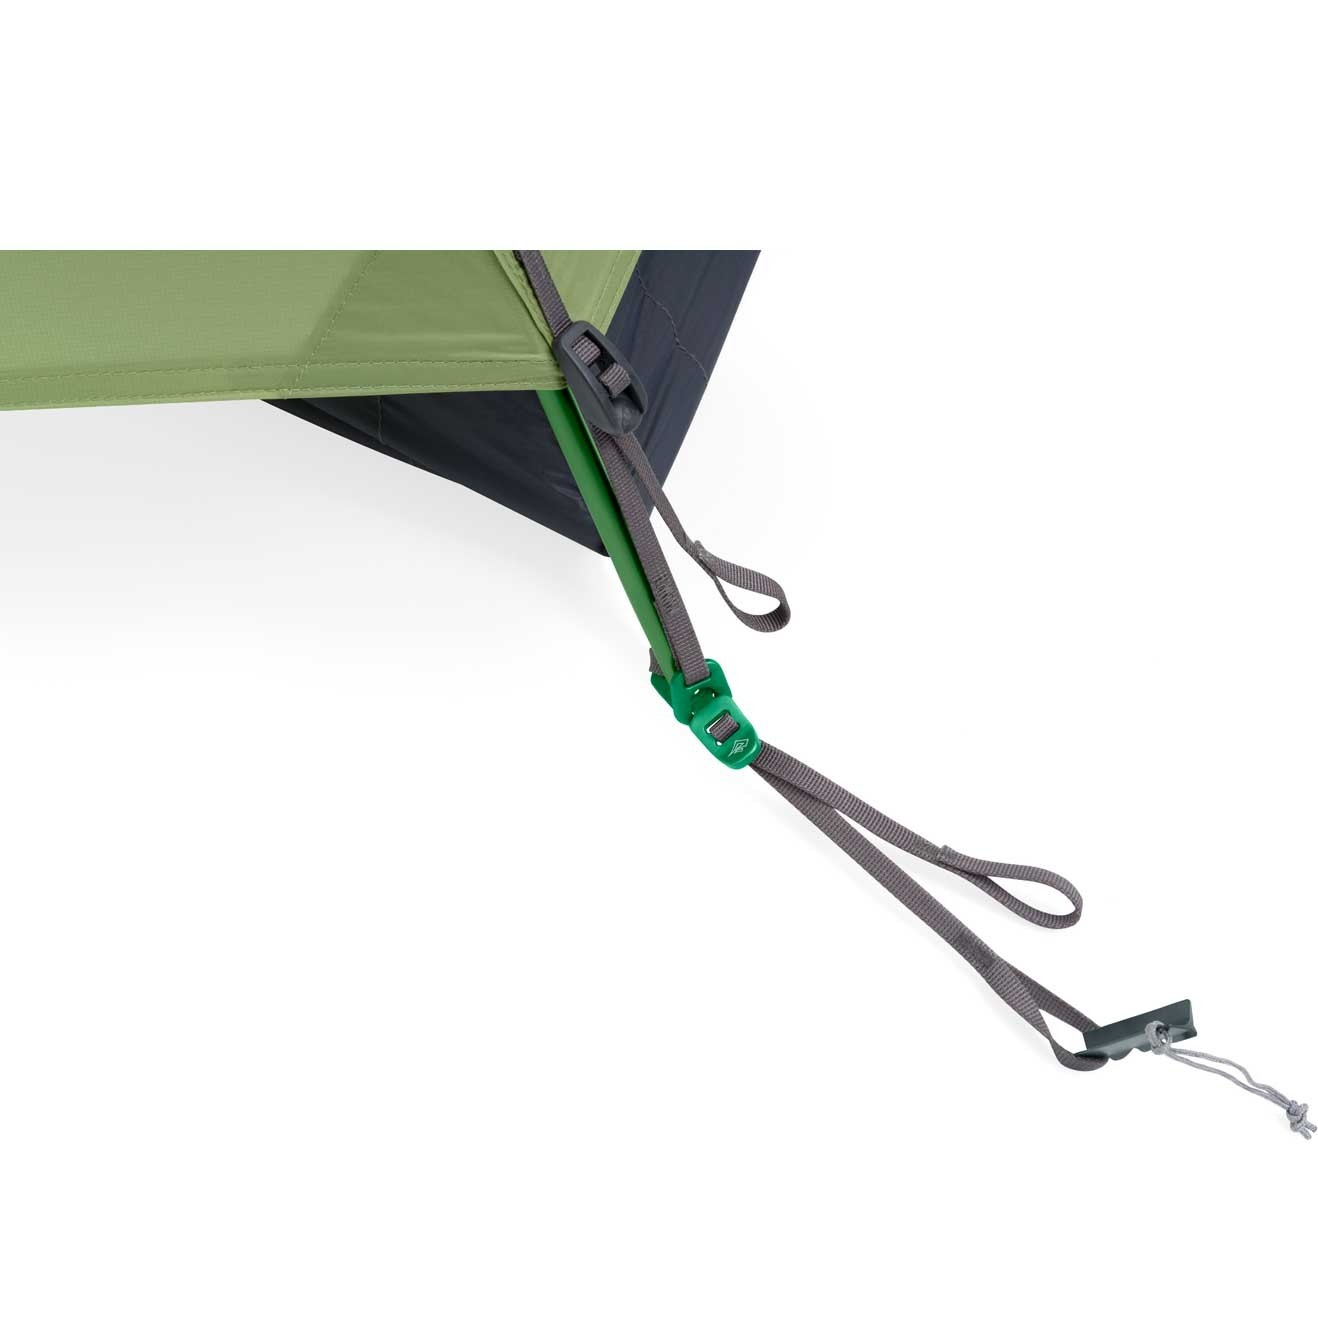 Sea To Summit Alto TR2 Plus Ultralight Tent - Green - quick connect foot